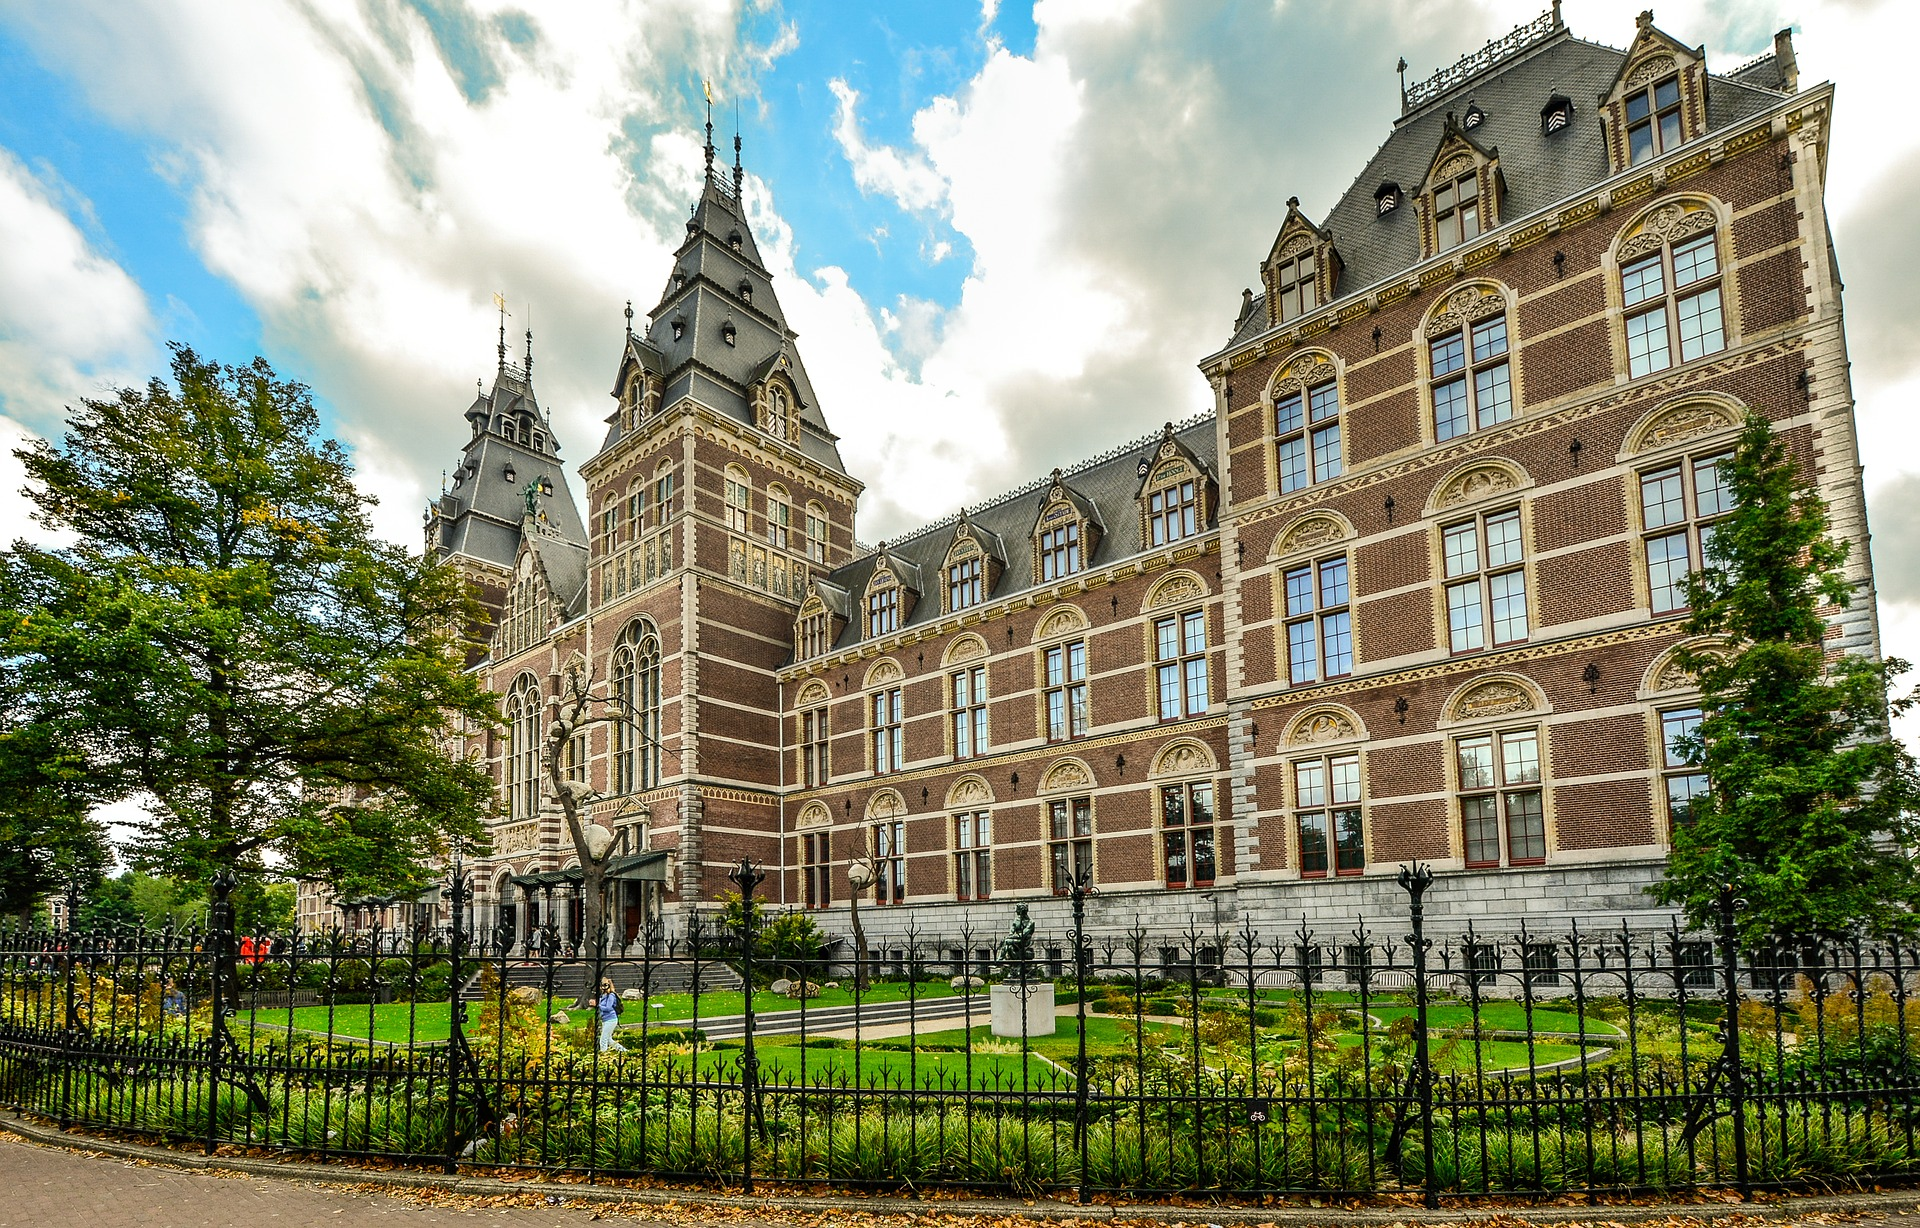 Country Roads of Belgium, Luxembourg & the Netherlands - Rijksmuseum, Amsterdam, The Netherlands